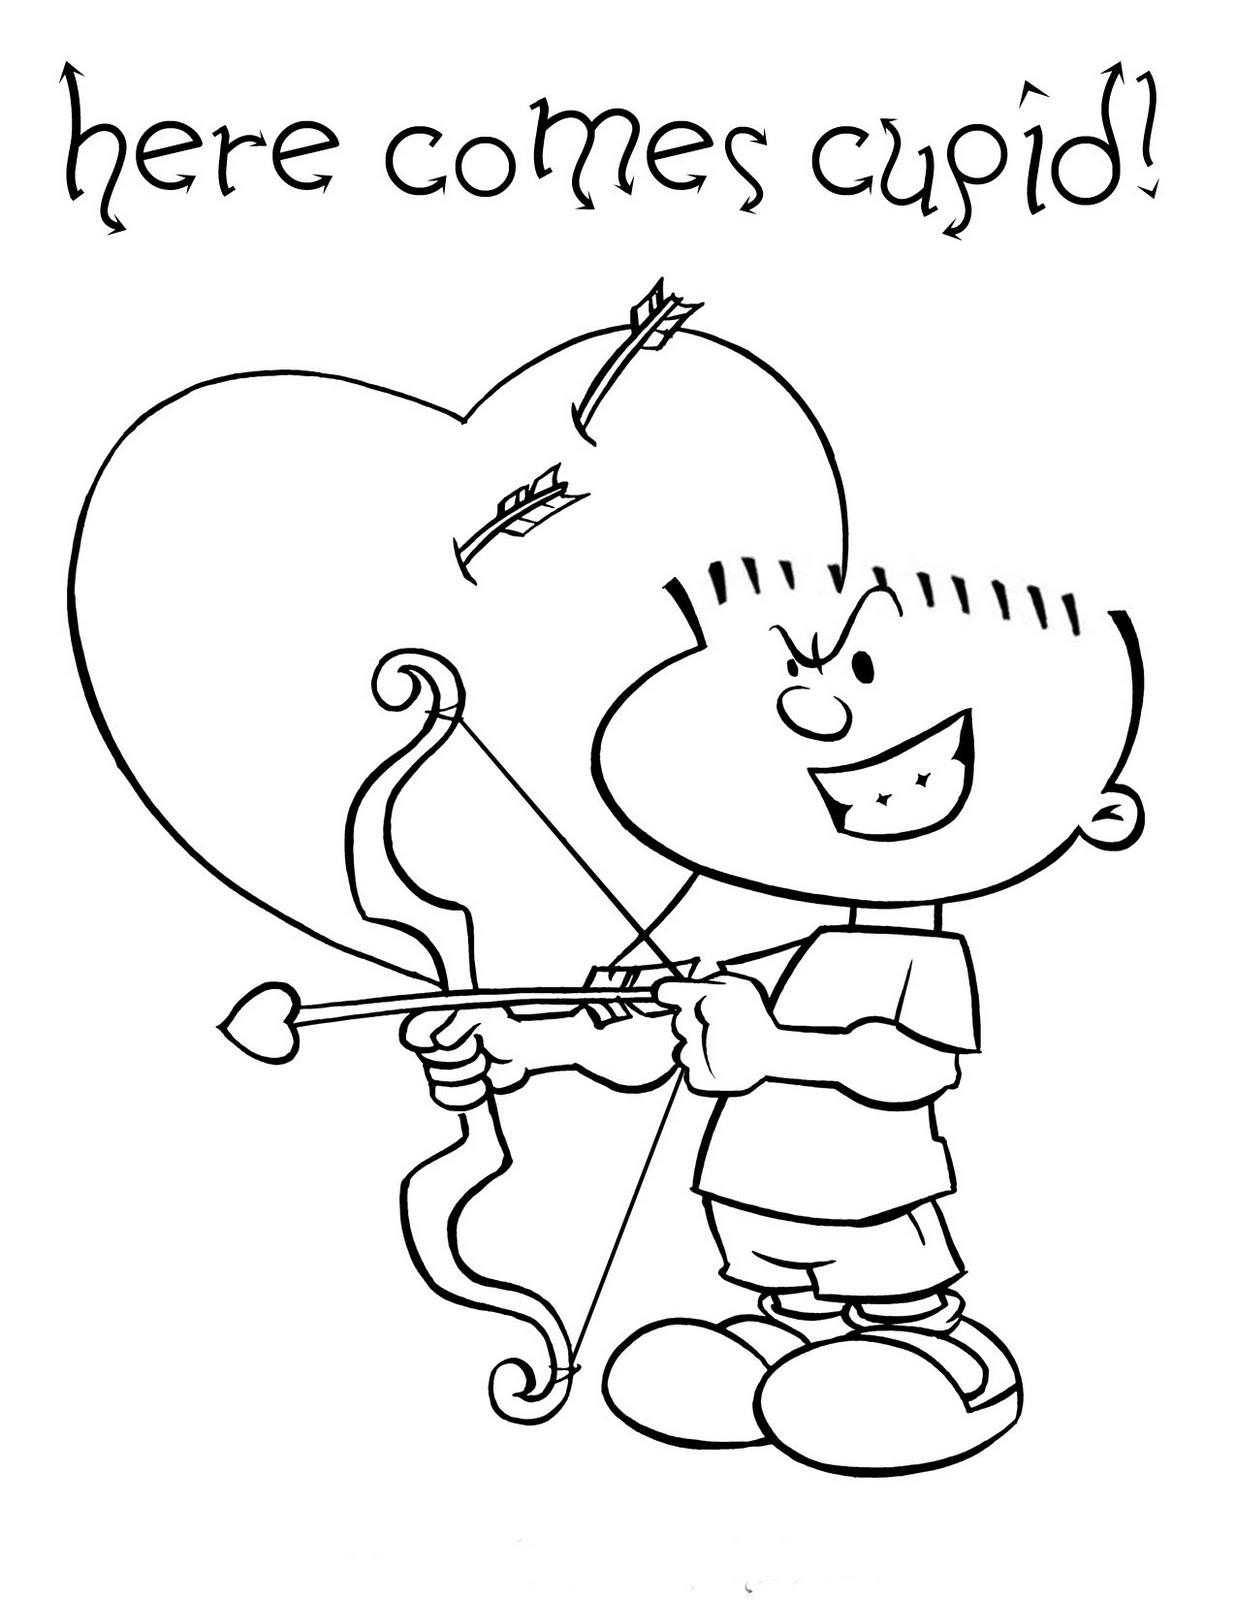 Coloring Pages DLTK's Crafts for Kids - coloring pages for valentines day